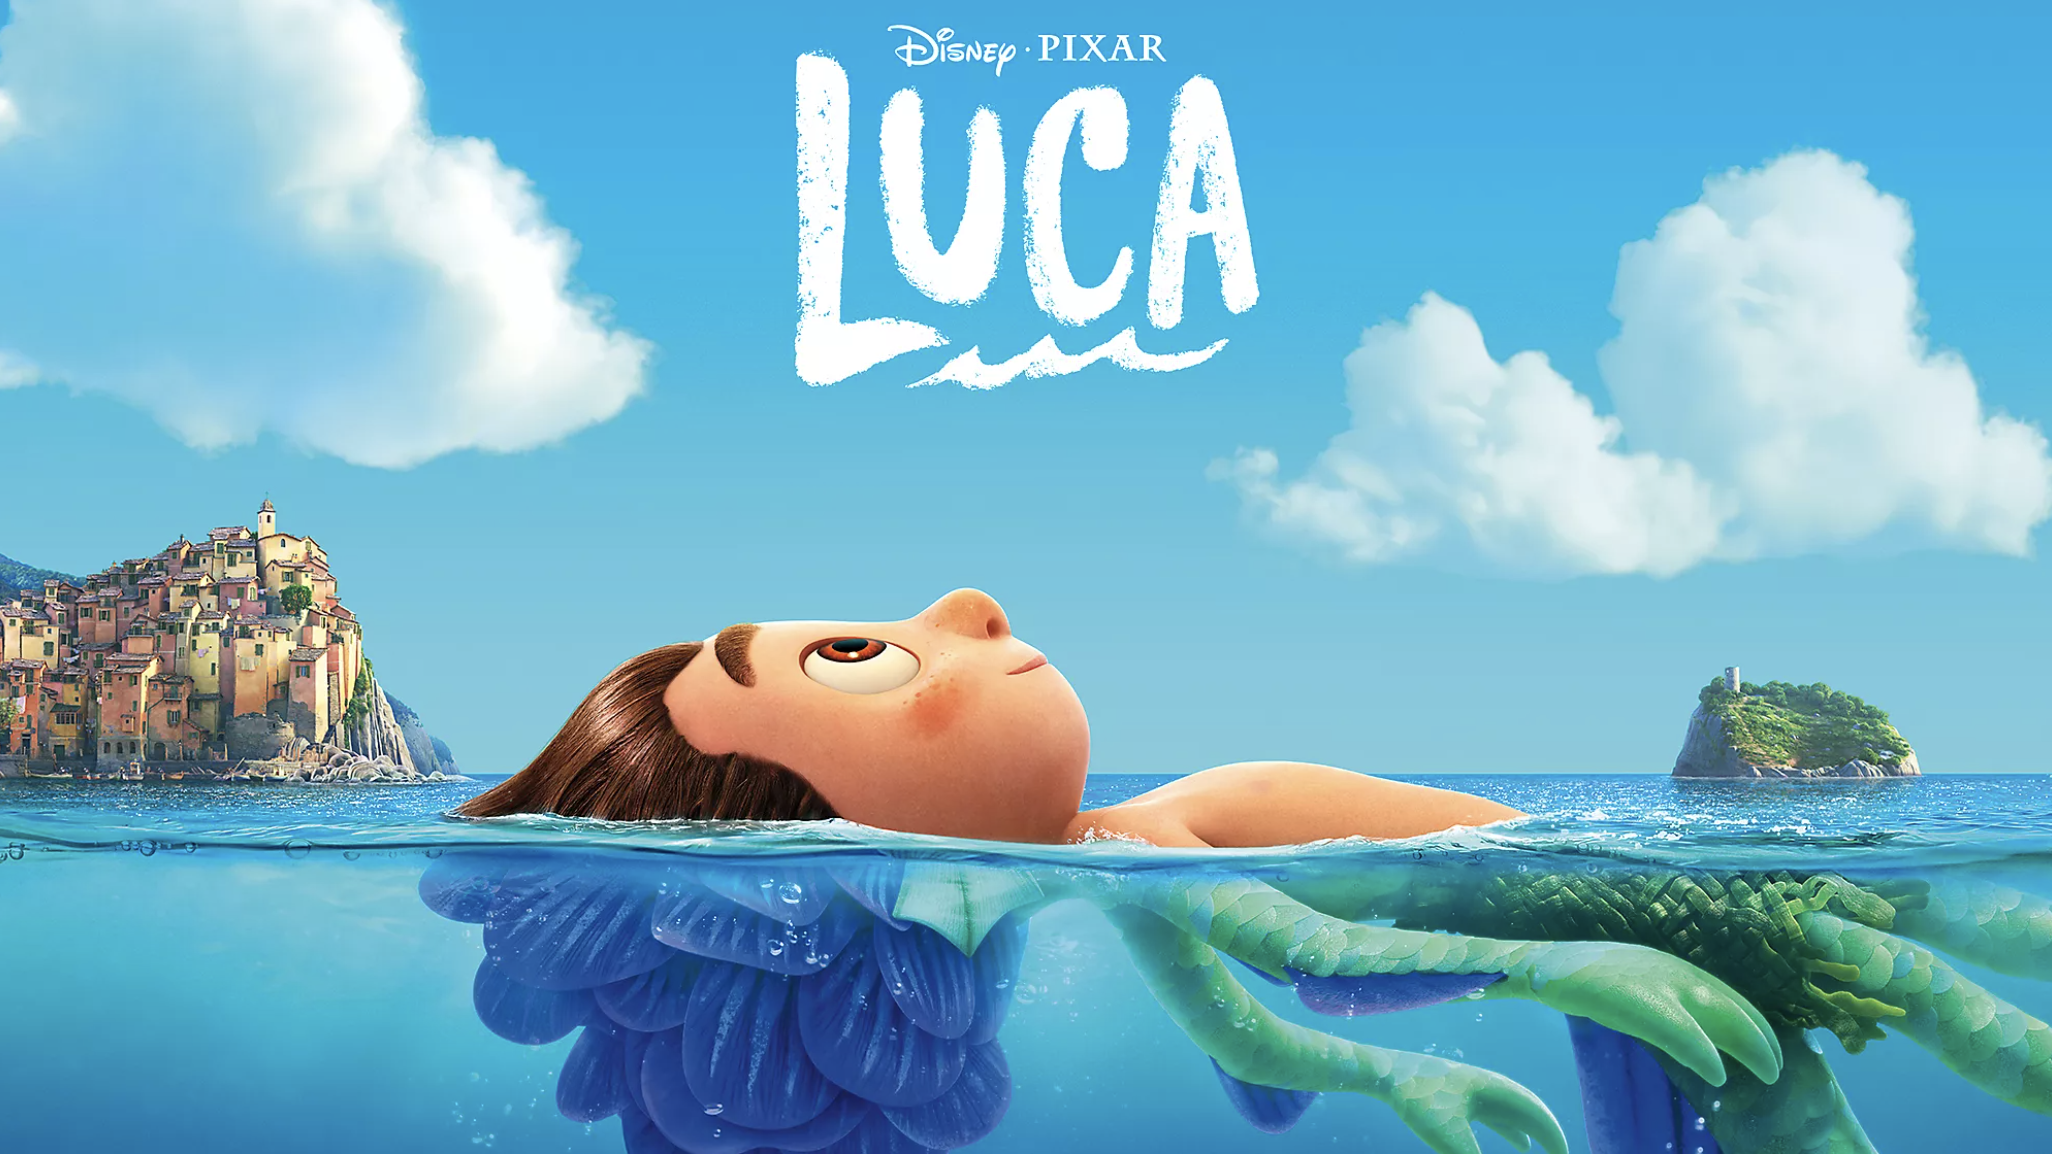 Luca – a colorful cartoon about friendship from Disney